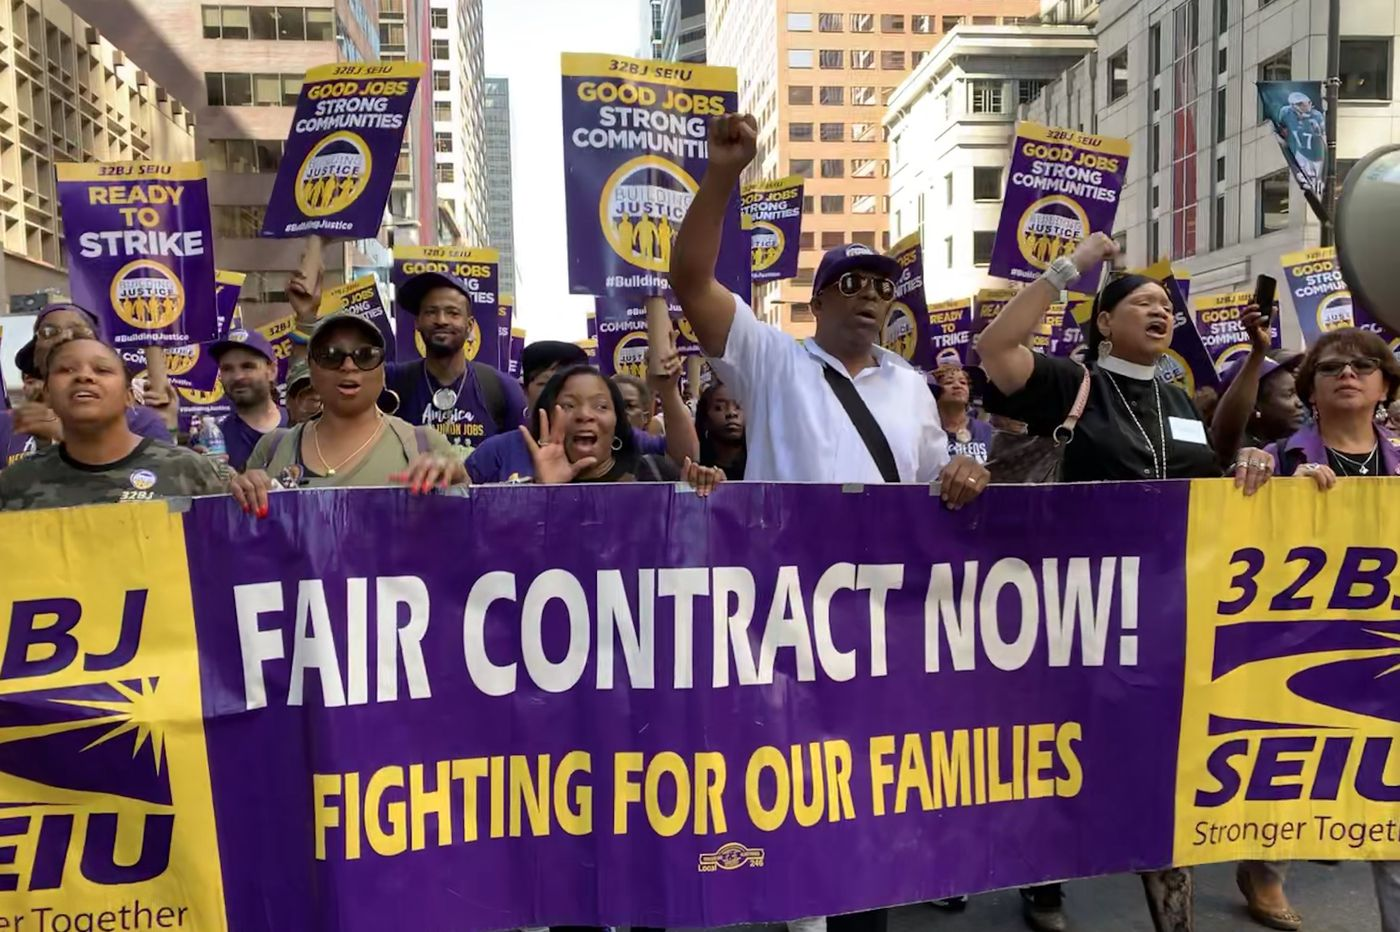 More than 1,000 office cleaners rally in Center City for fair contract